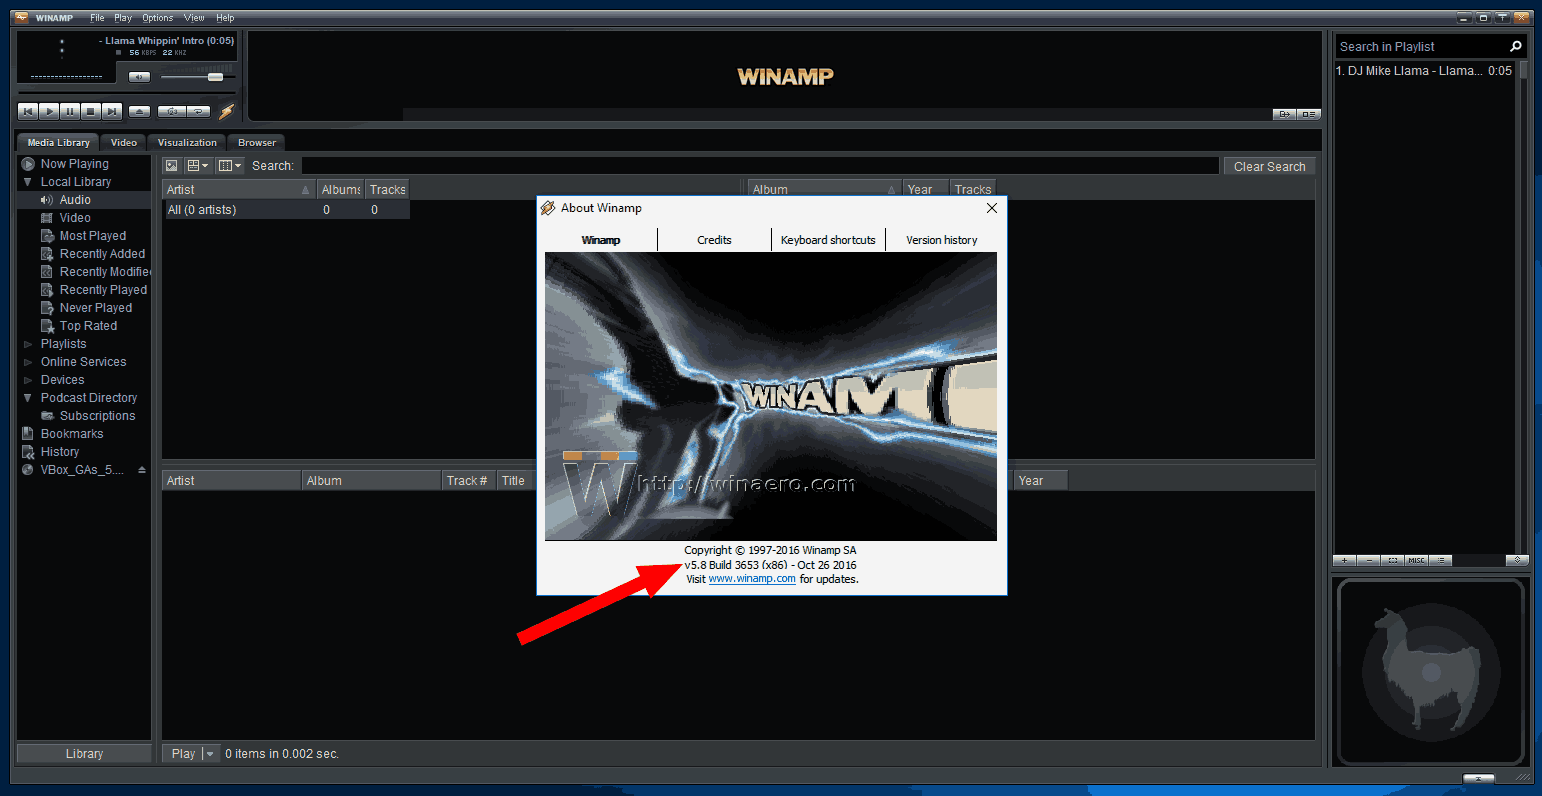 Winamp 5.8 beta on Windows 10